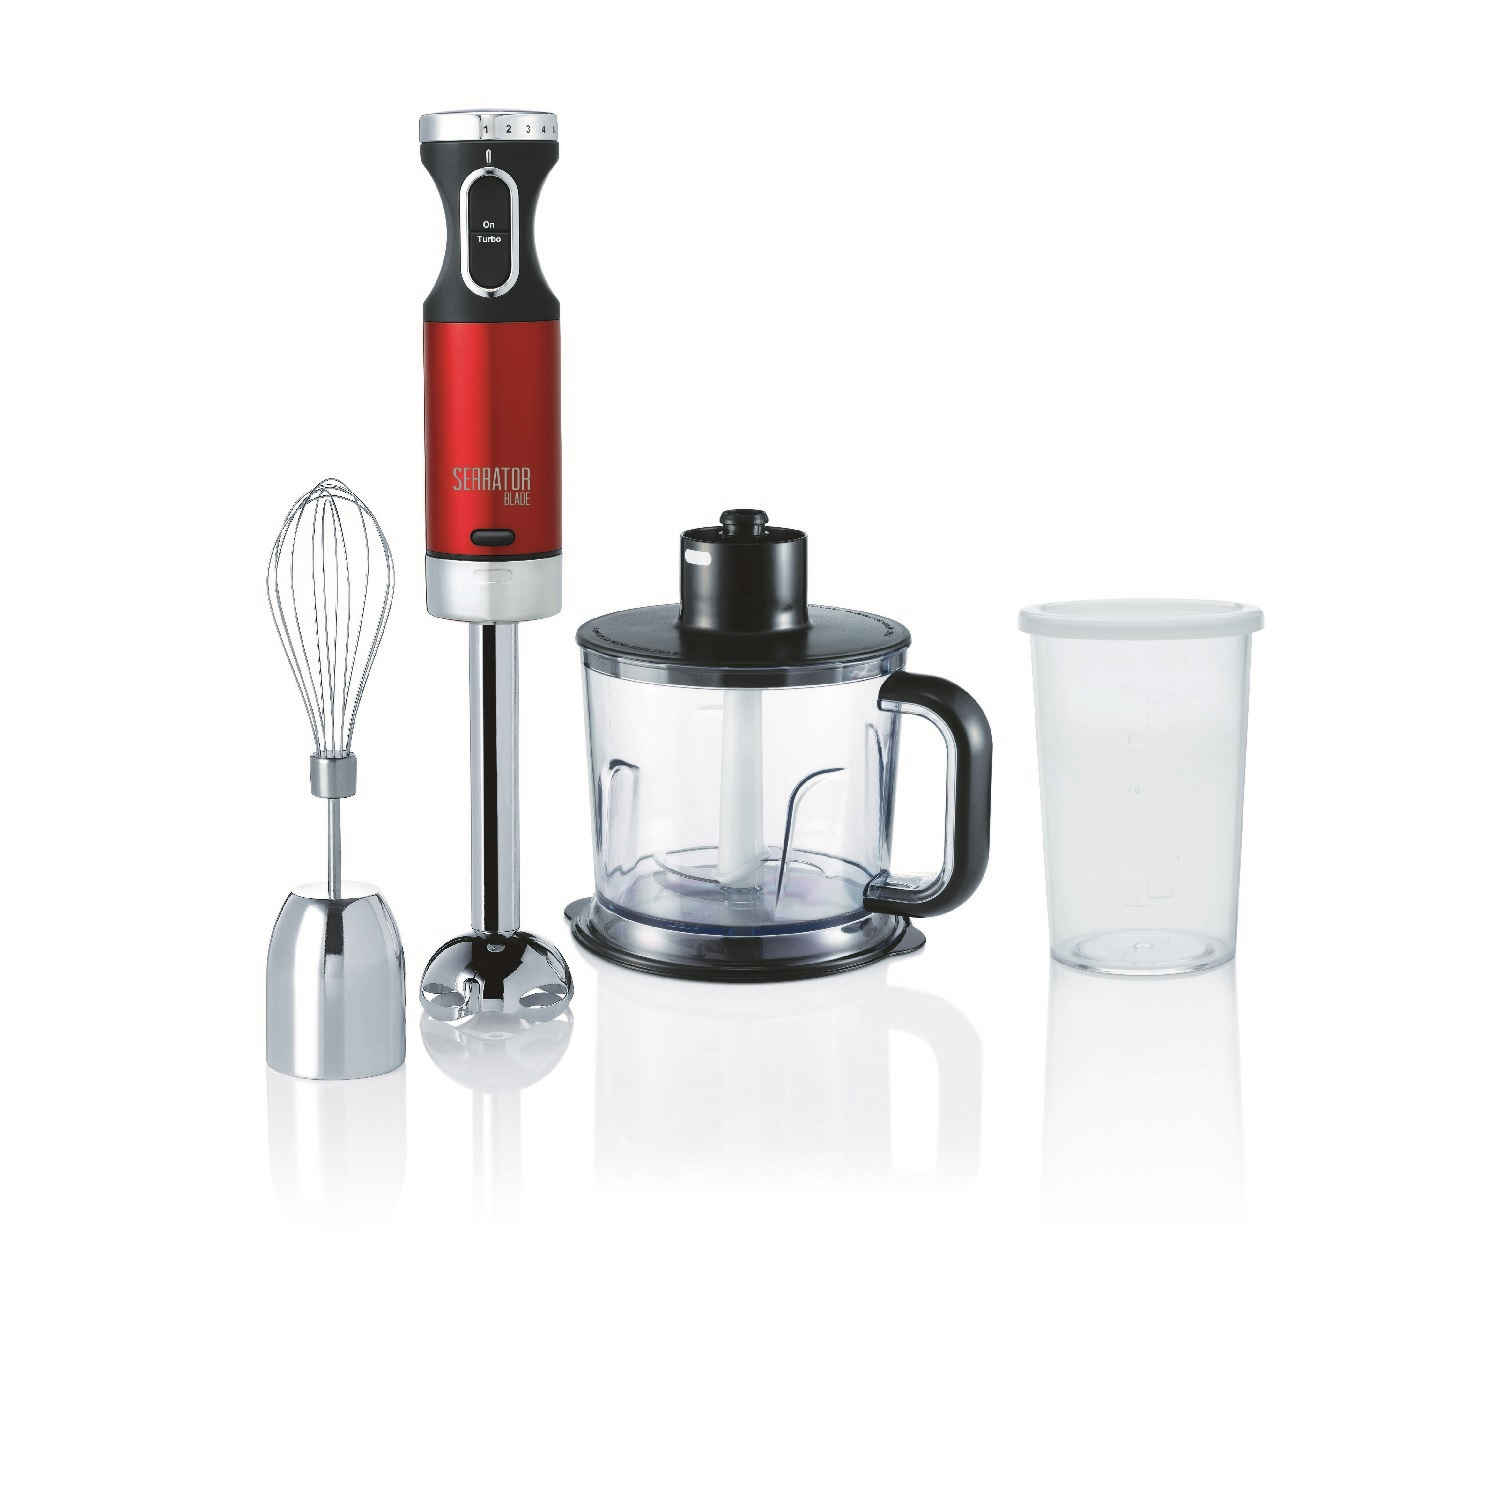 MORPHY RICHARDS ACCENTS 600W RED STAINLESS STEEL HAND BLENDER SET SERRATOR BLADE | eBay